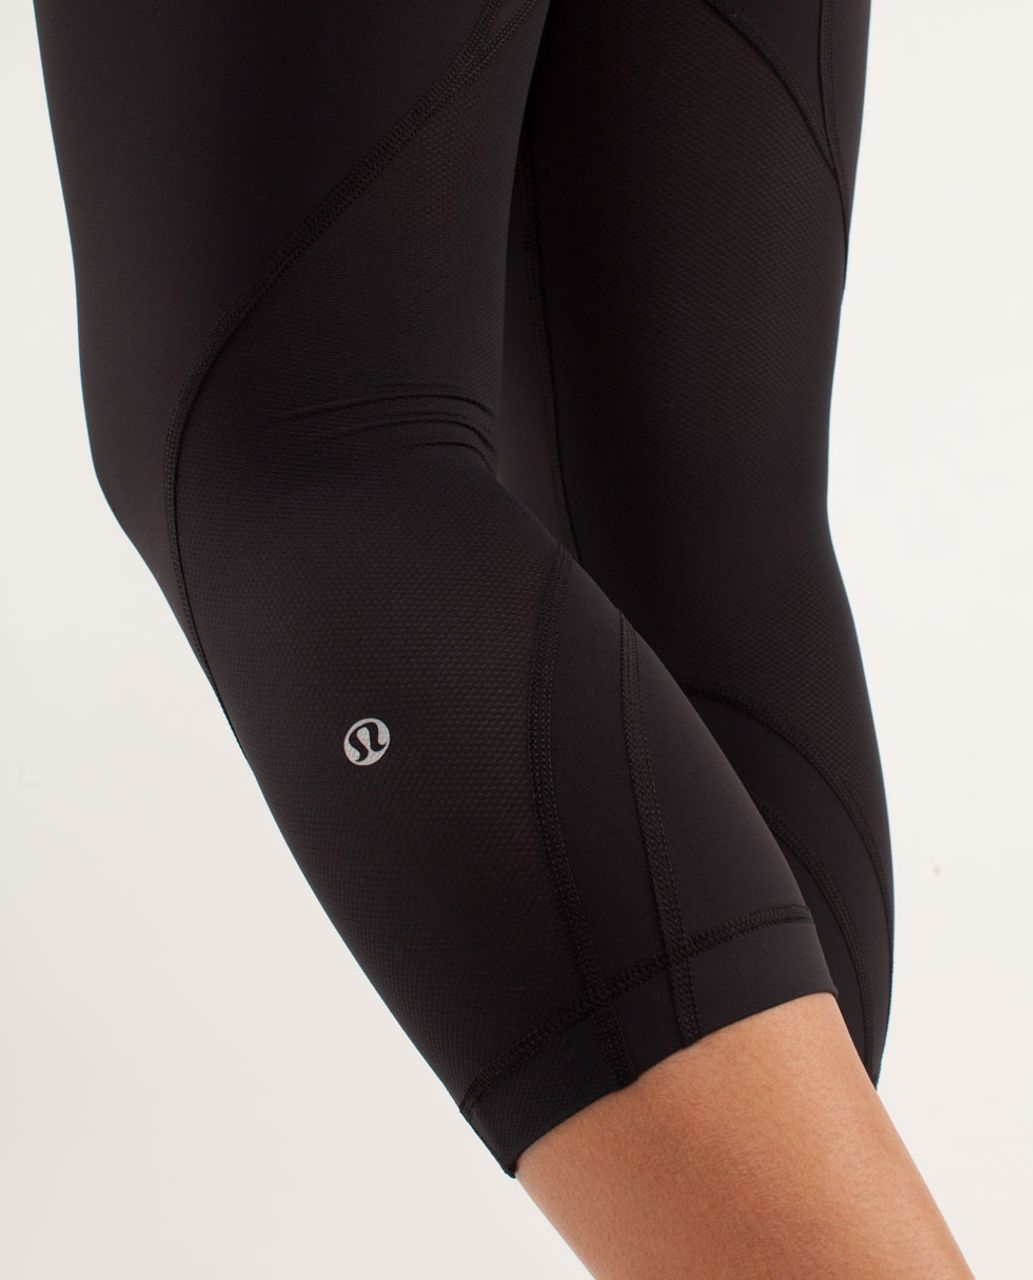 Lululemon Run:  Inspire Crop II - Black / Quilt Spring13 12